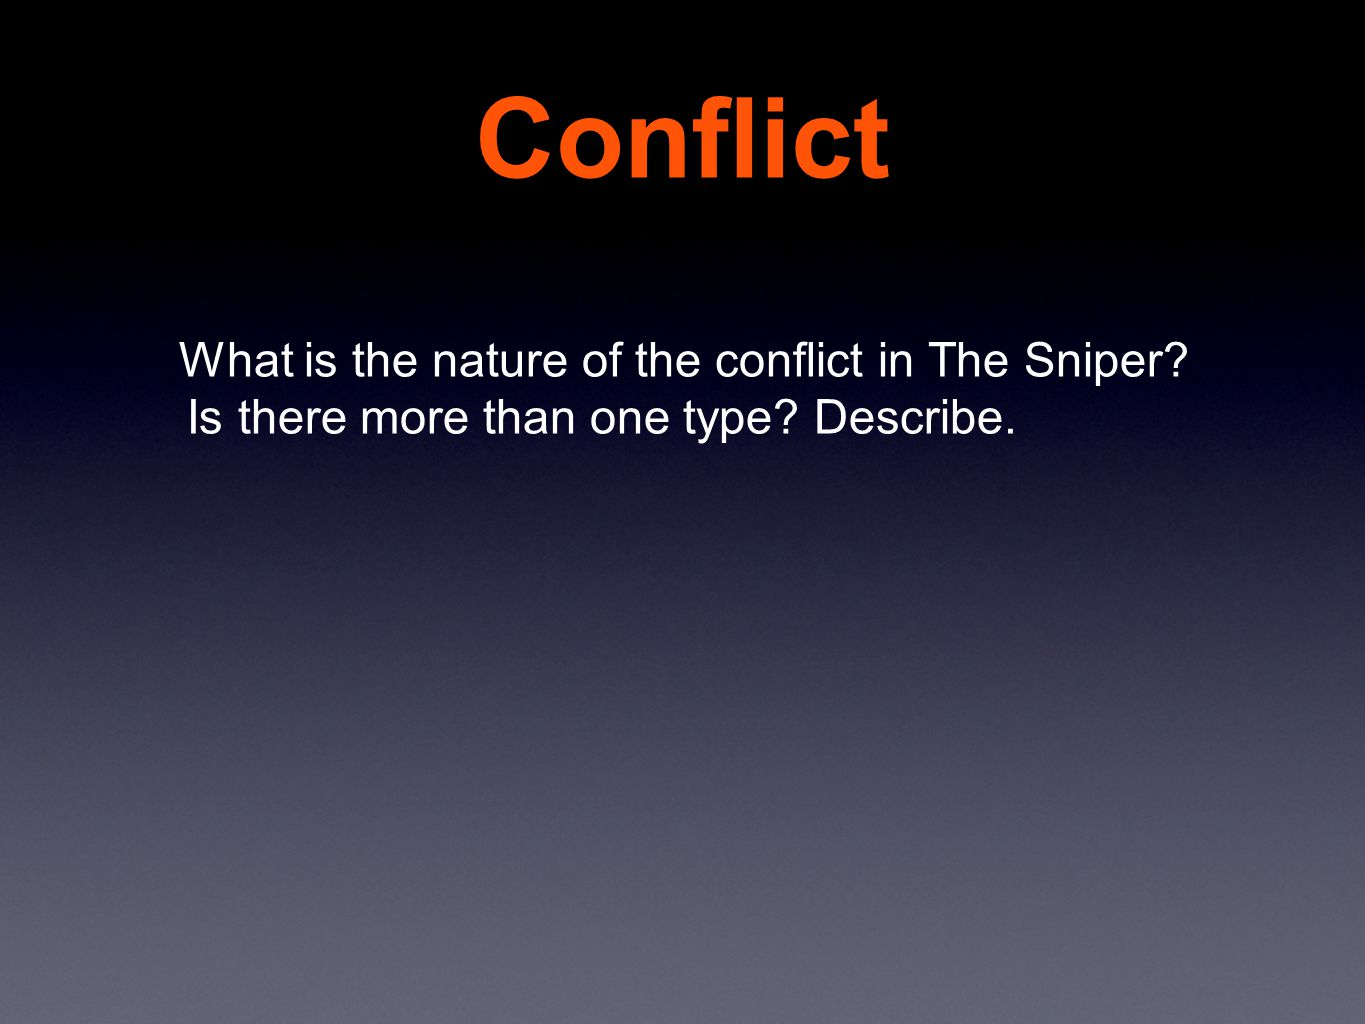 High School Essay Conflict What Is The Nature Of The Conflict In The Sniper Essay On Good Health also How To Write A Good Thesis Statement For An Essay A Short Story The Sniper By Liam Oflaherty  Ppt Video Online  Hamlet Essay Thesis